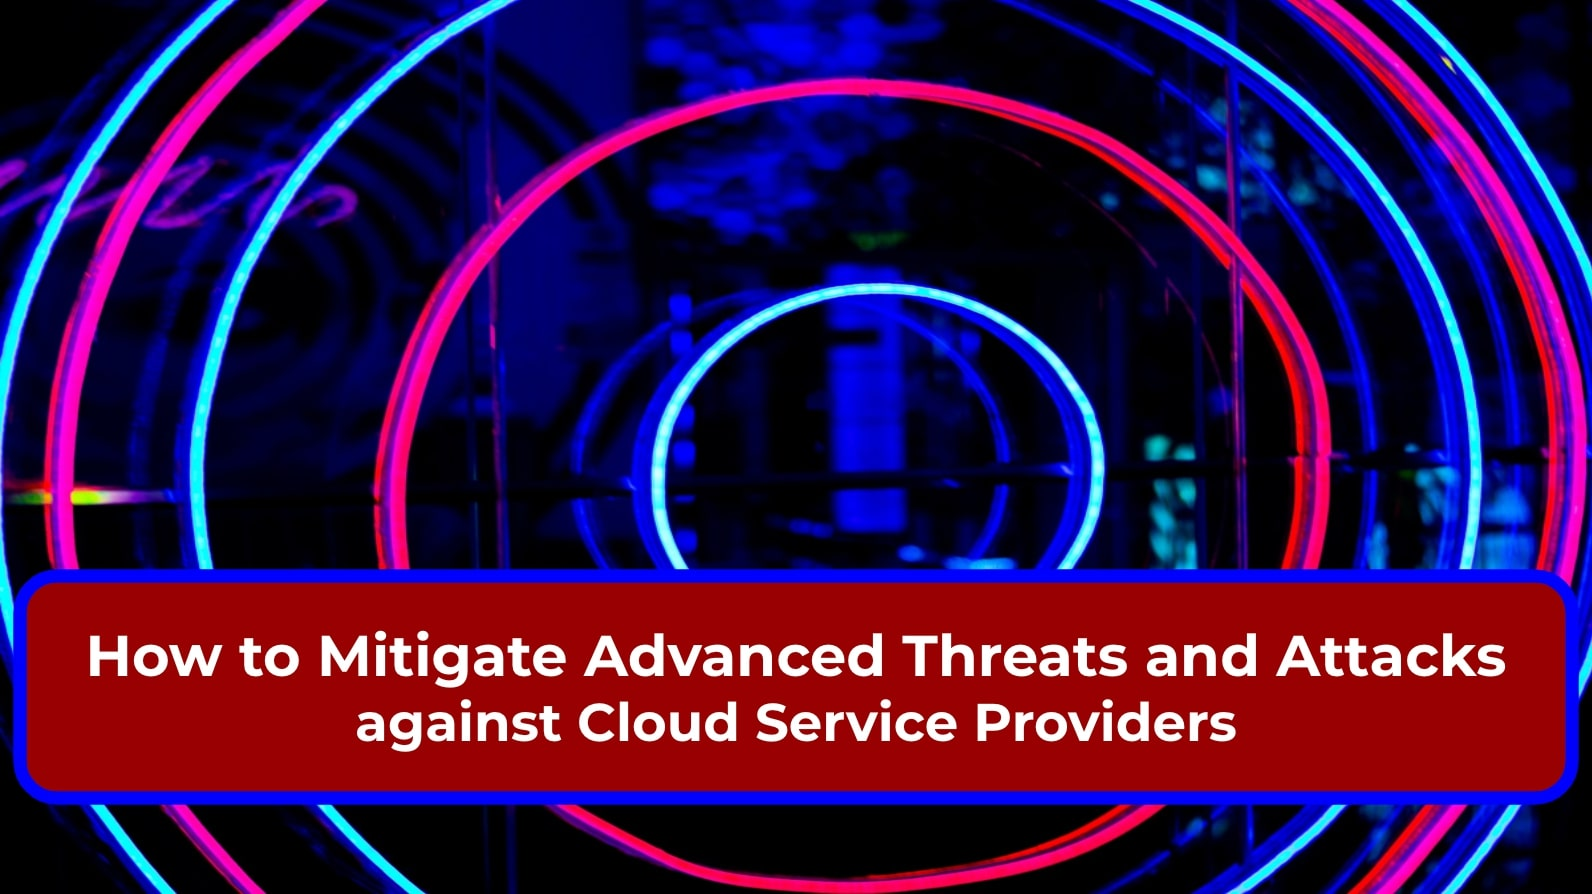 How to Mitigate Advanced Threats and Attacks against Cloud Service Providers